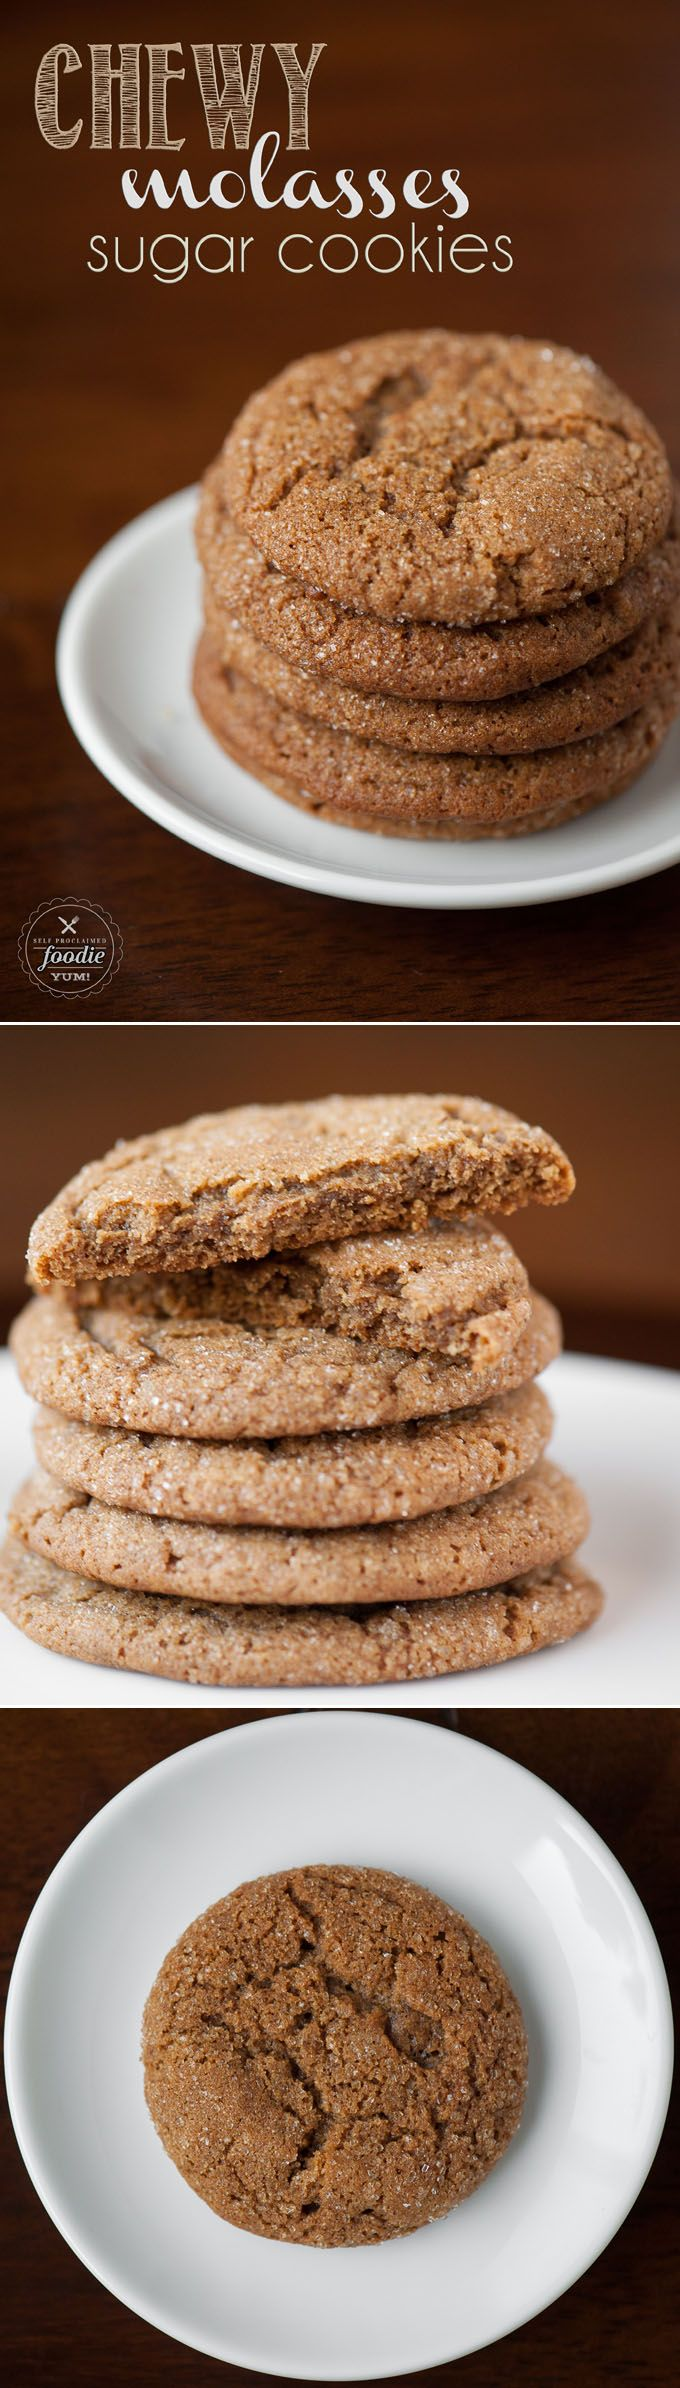 Chewy Molasses Sugar Cookies are easy to make holiday favorites, and each soft and chewy bite packs the perfect amount of sweet and spice.